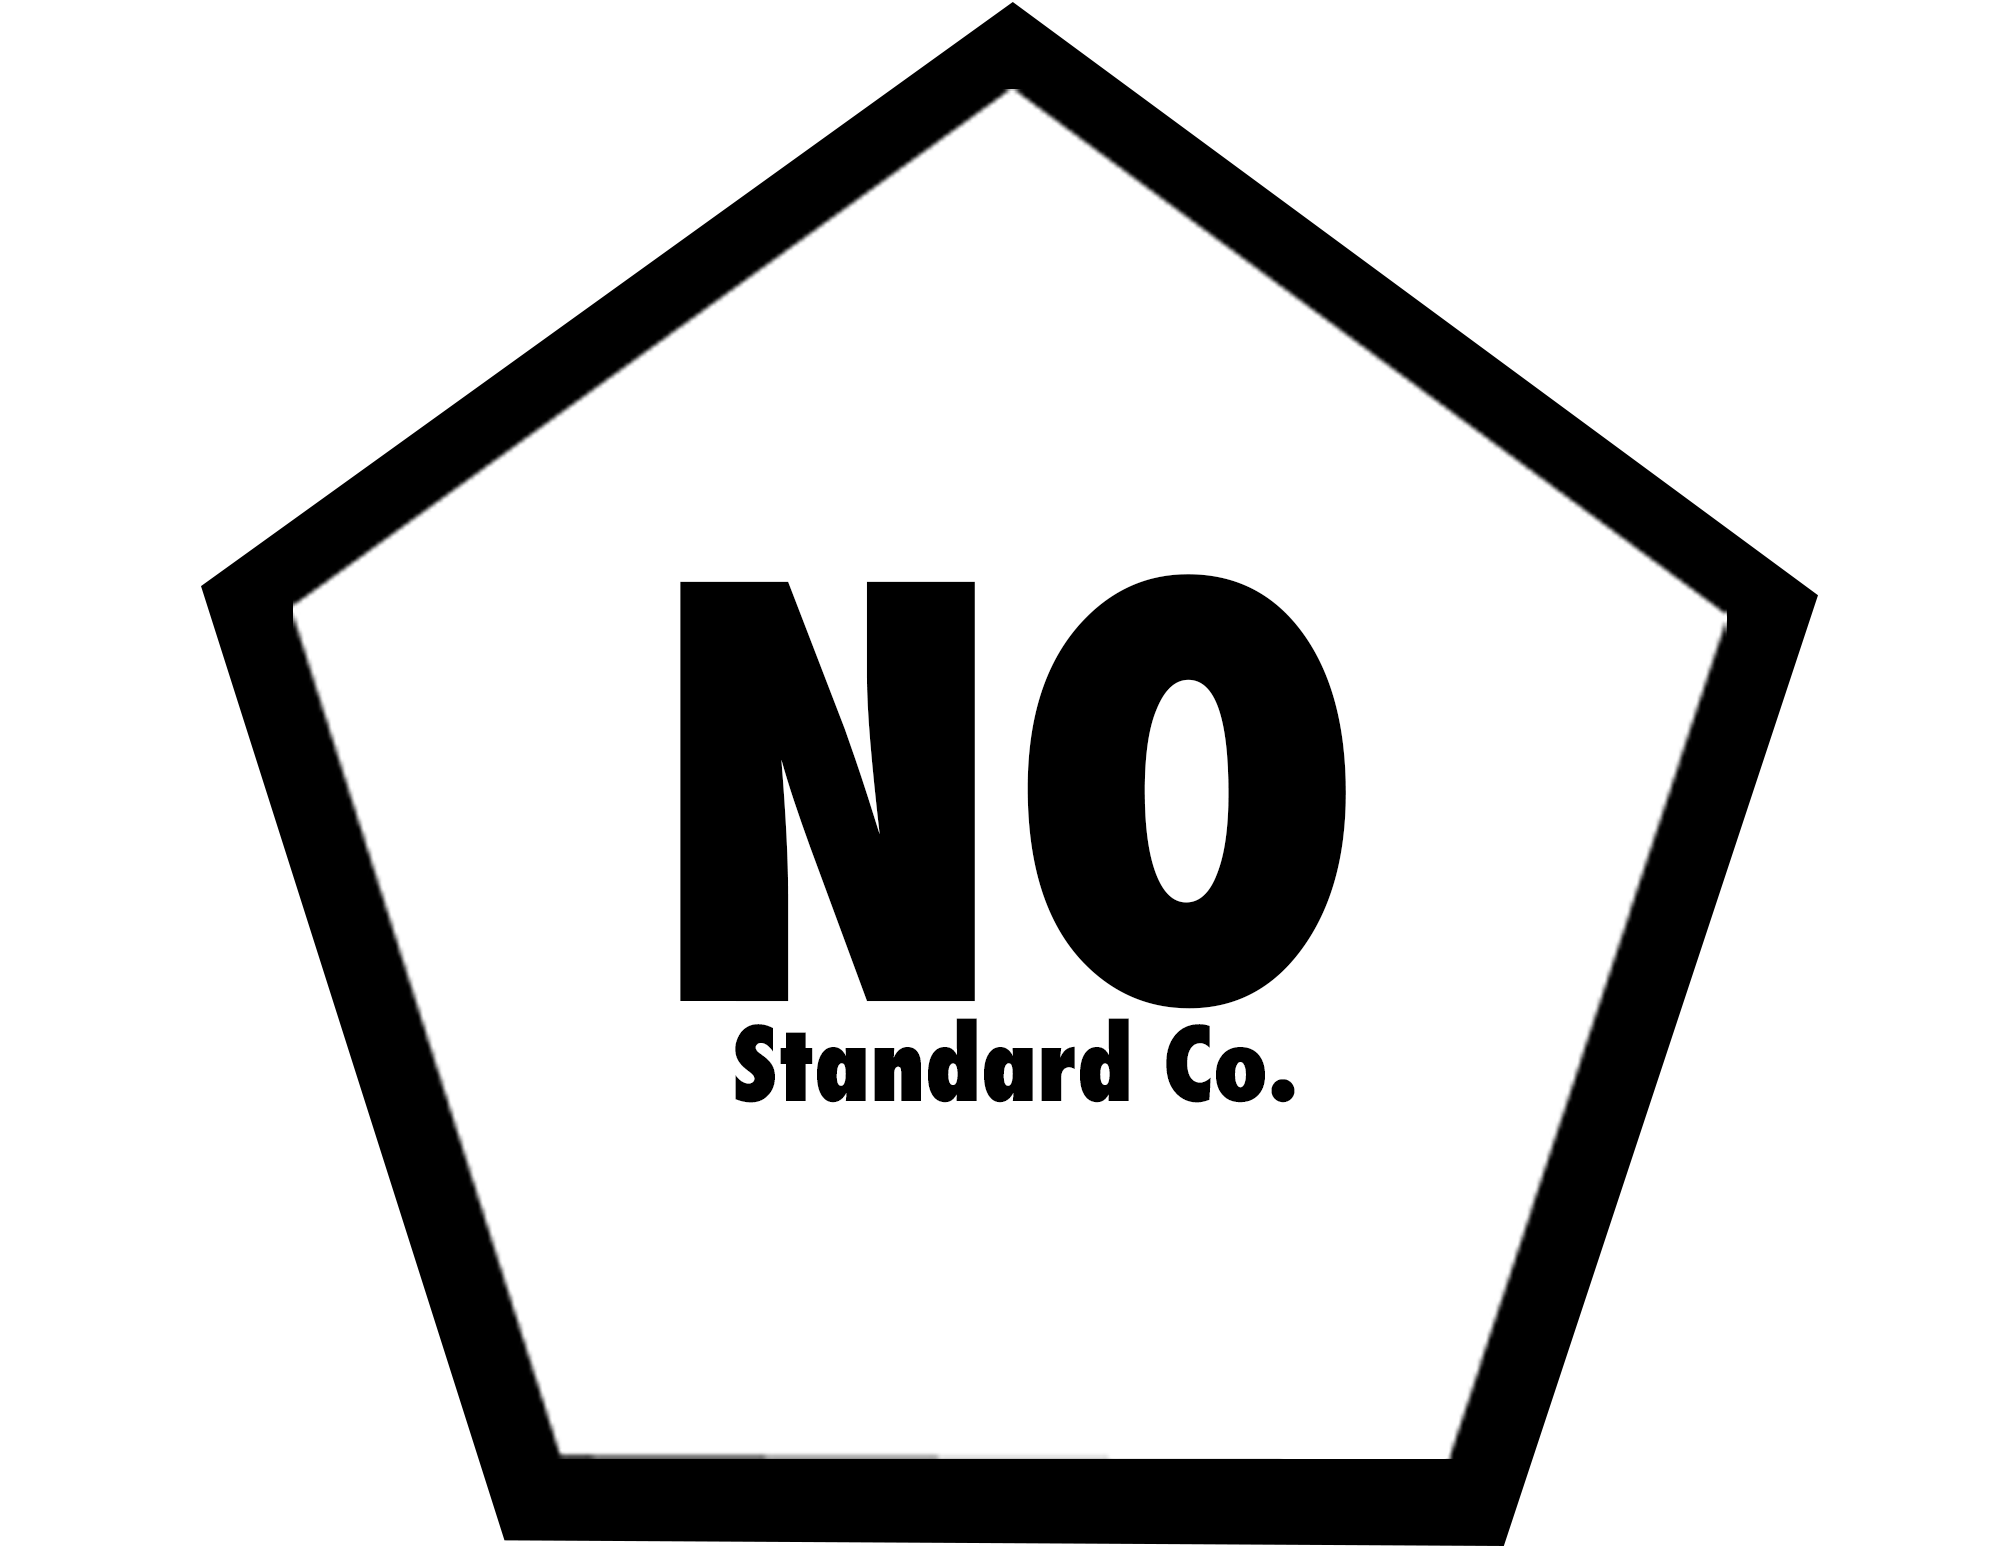 NO STANDARD CO.